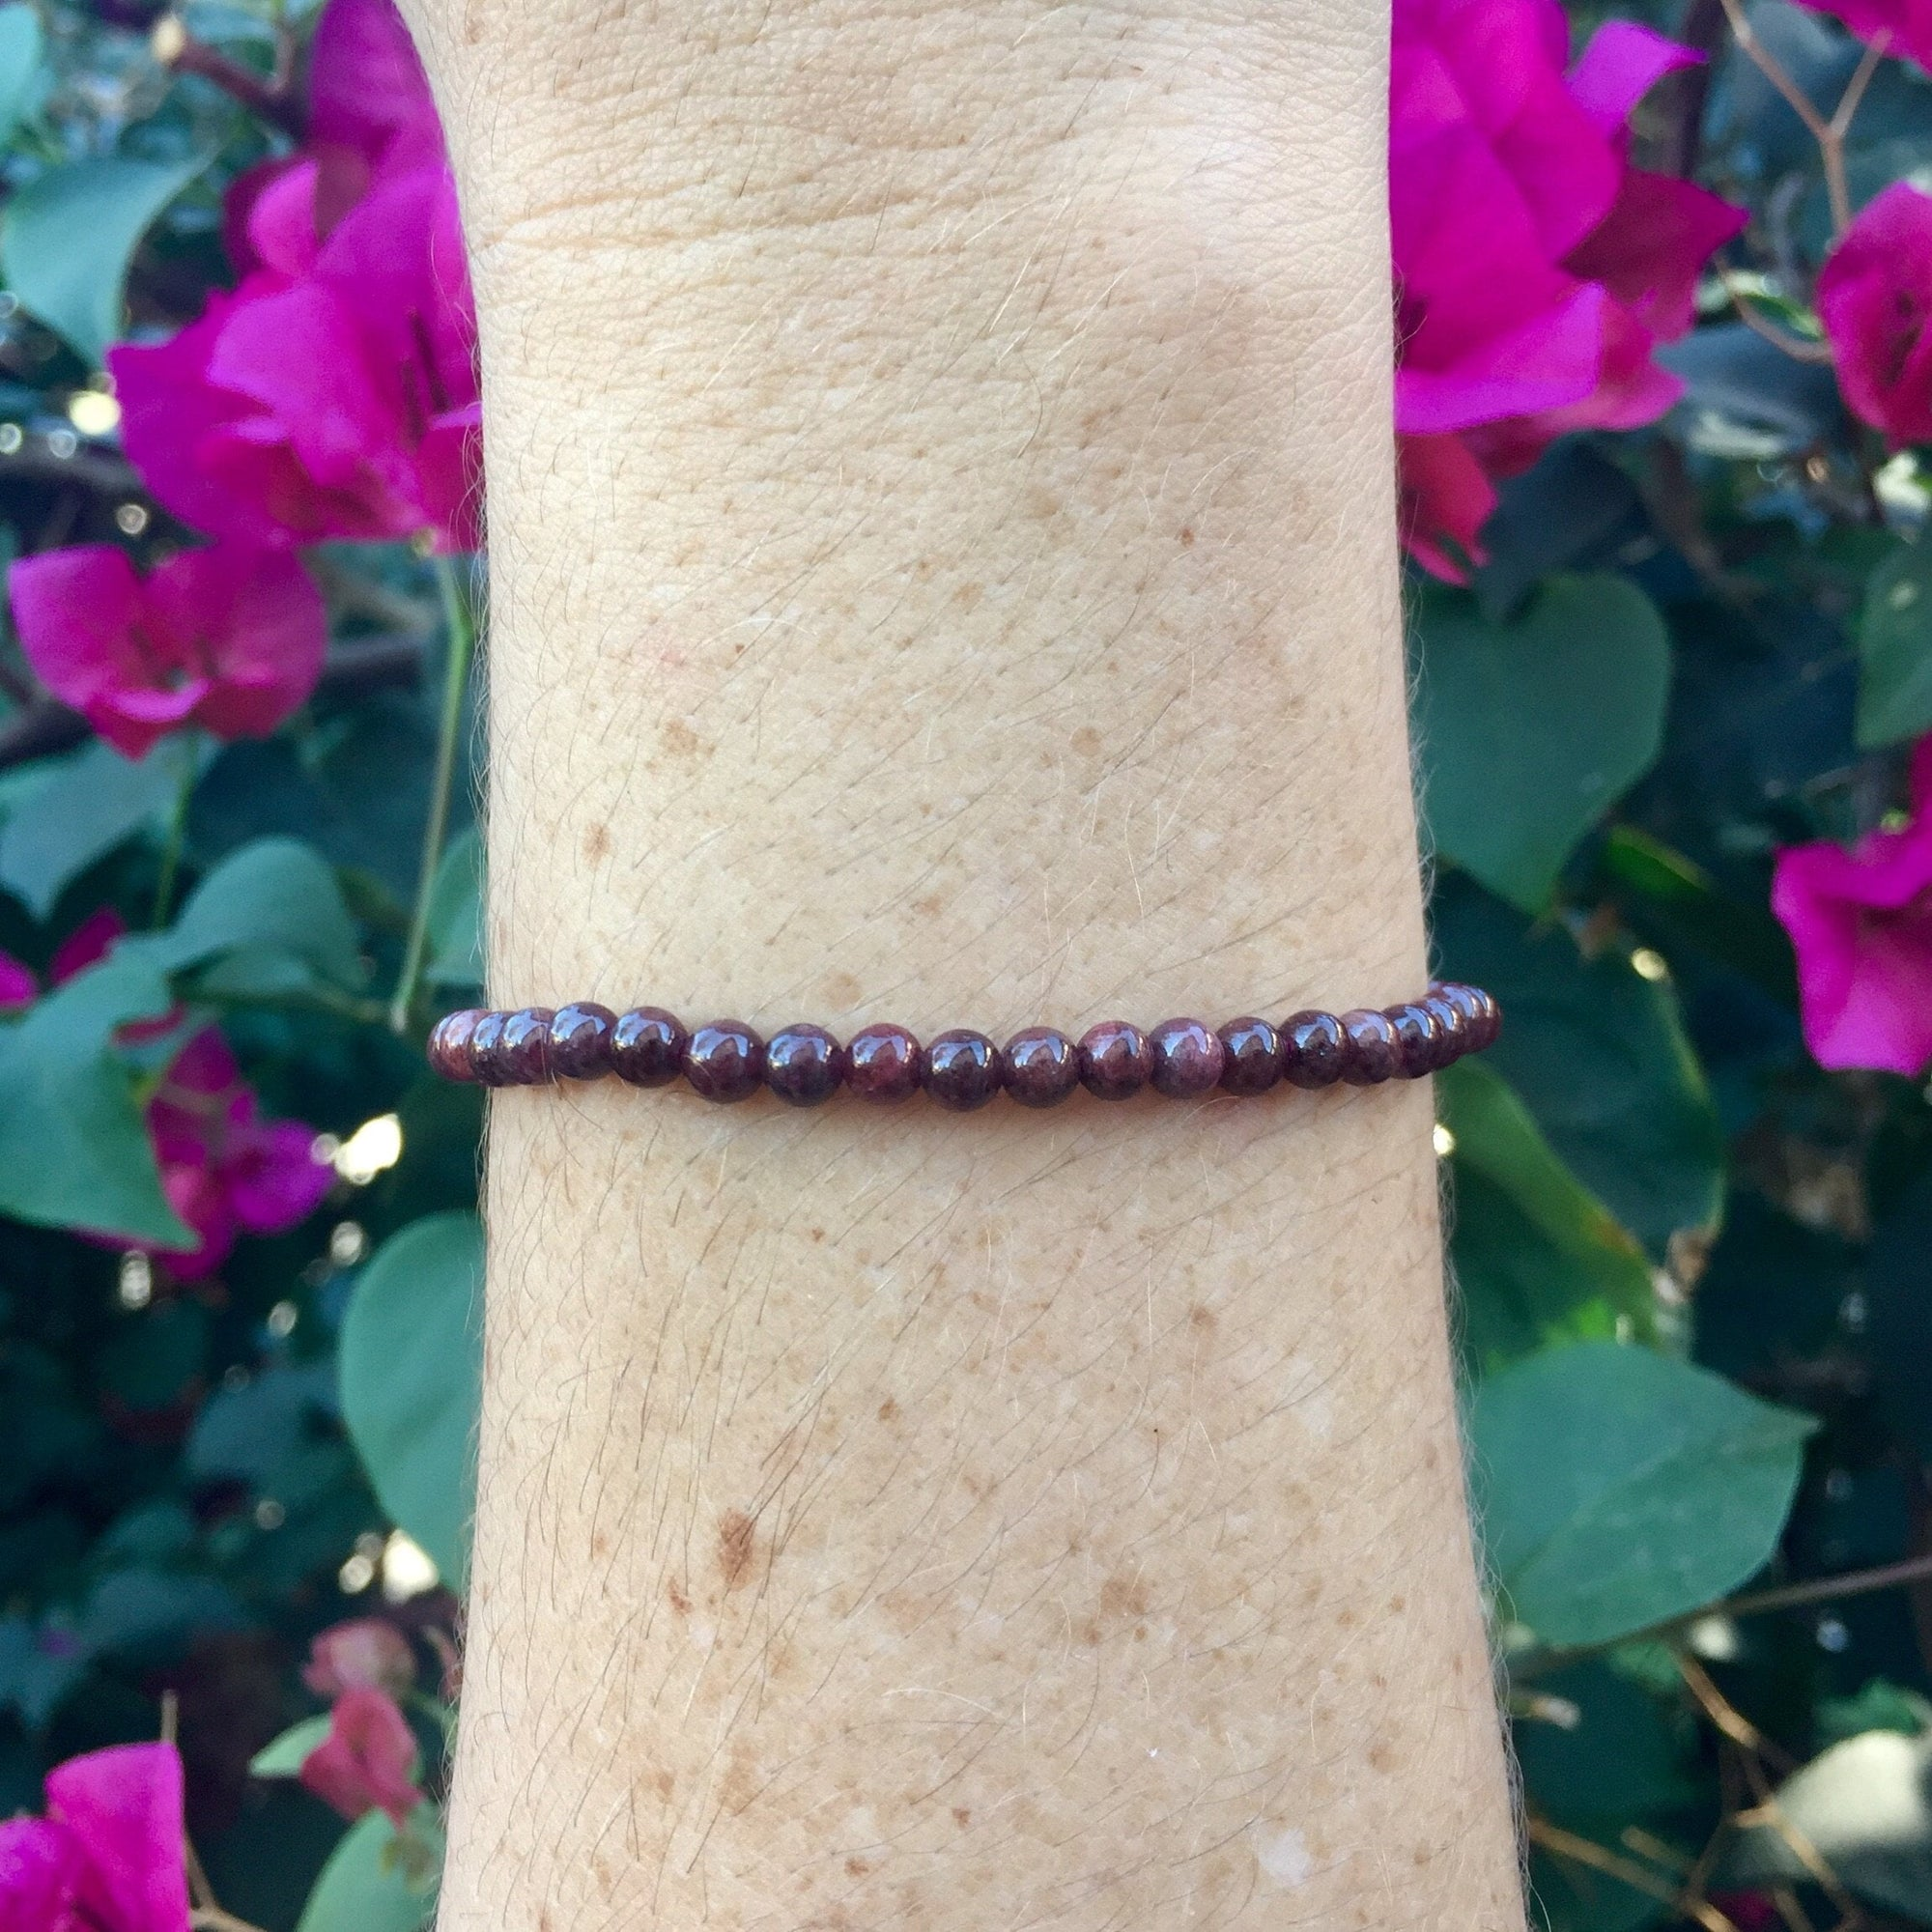 Garnet Bracelet - Sparkle Rock Pop